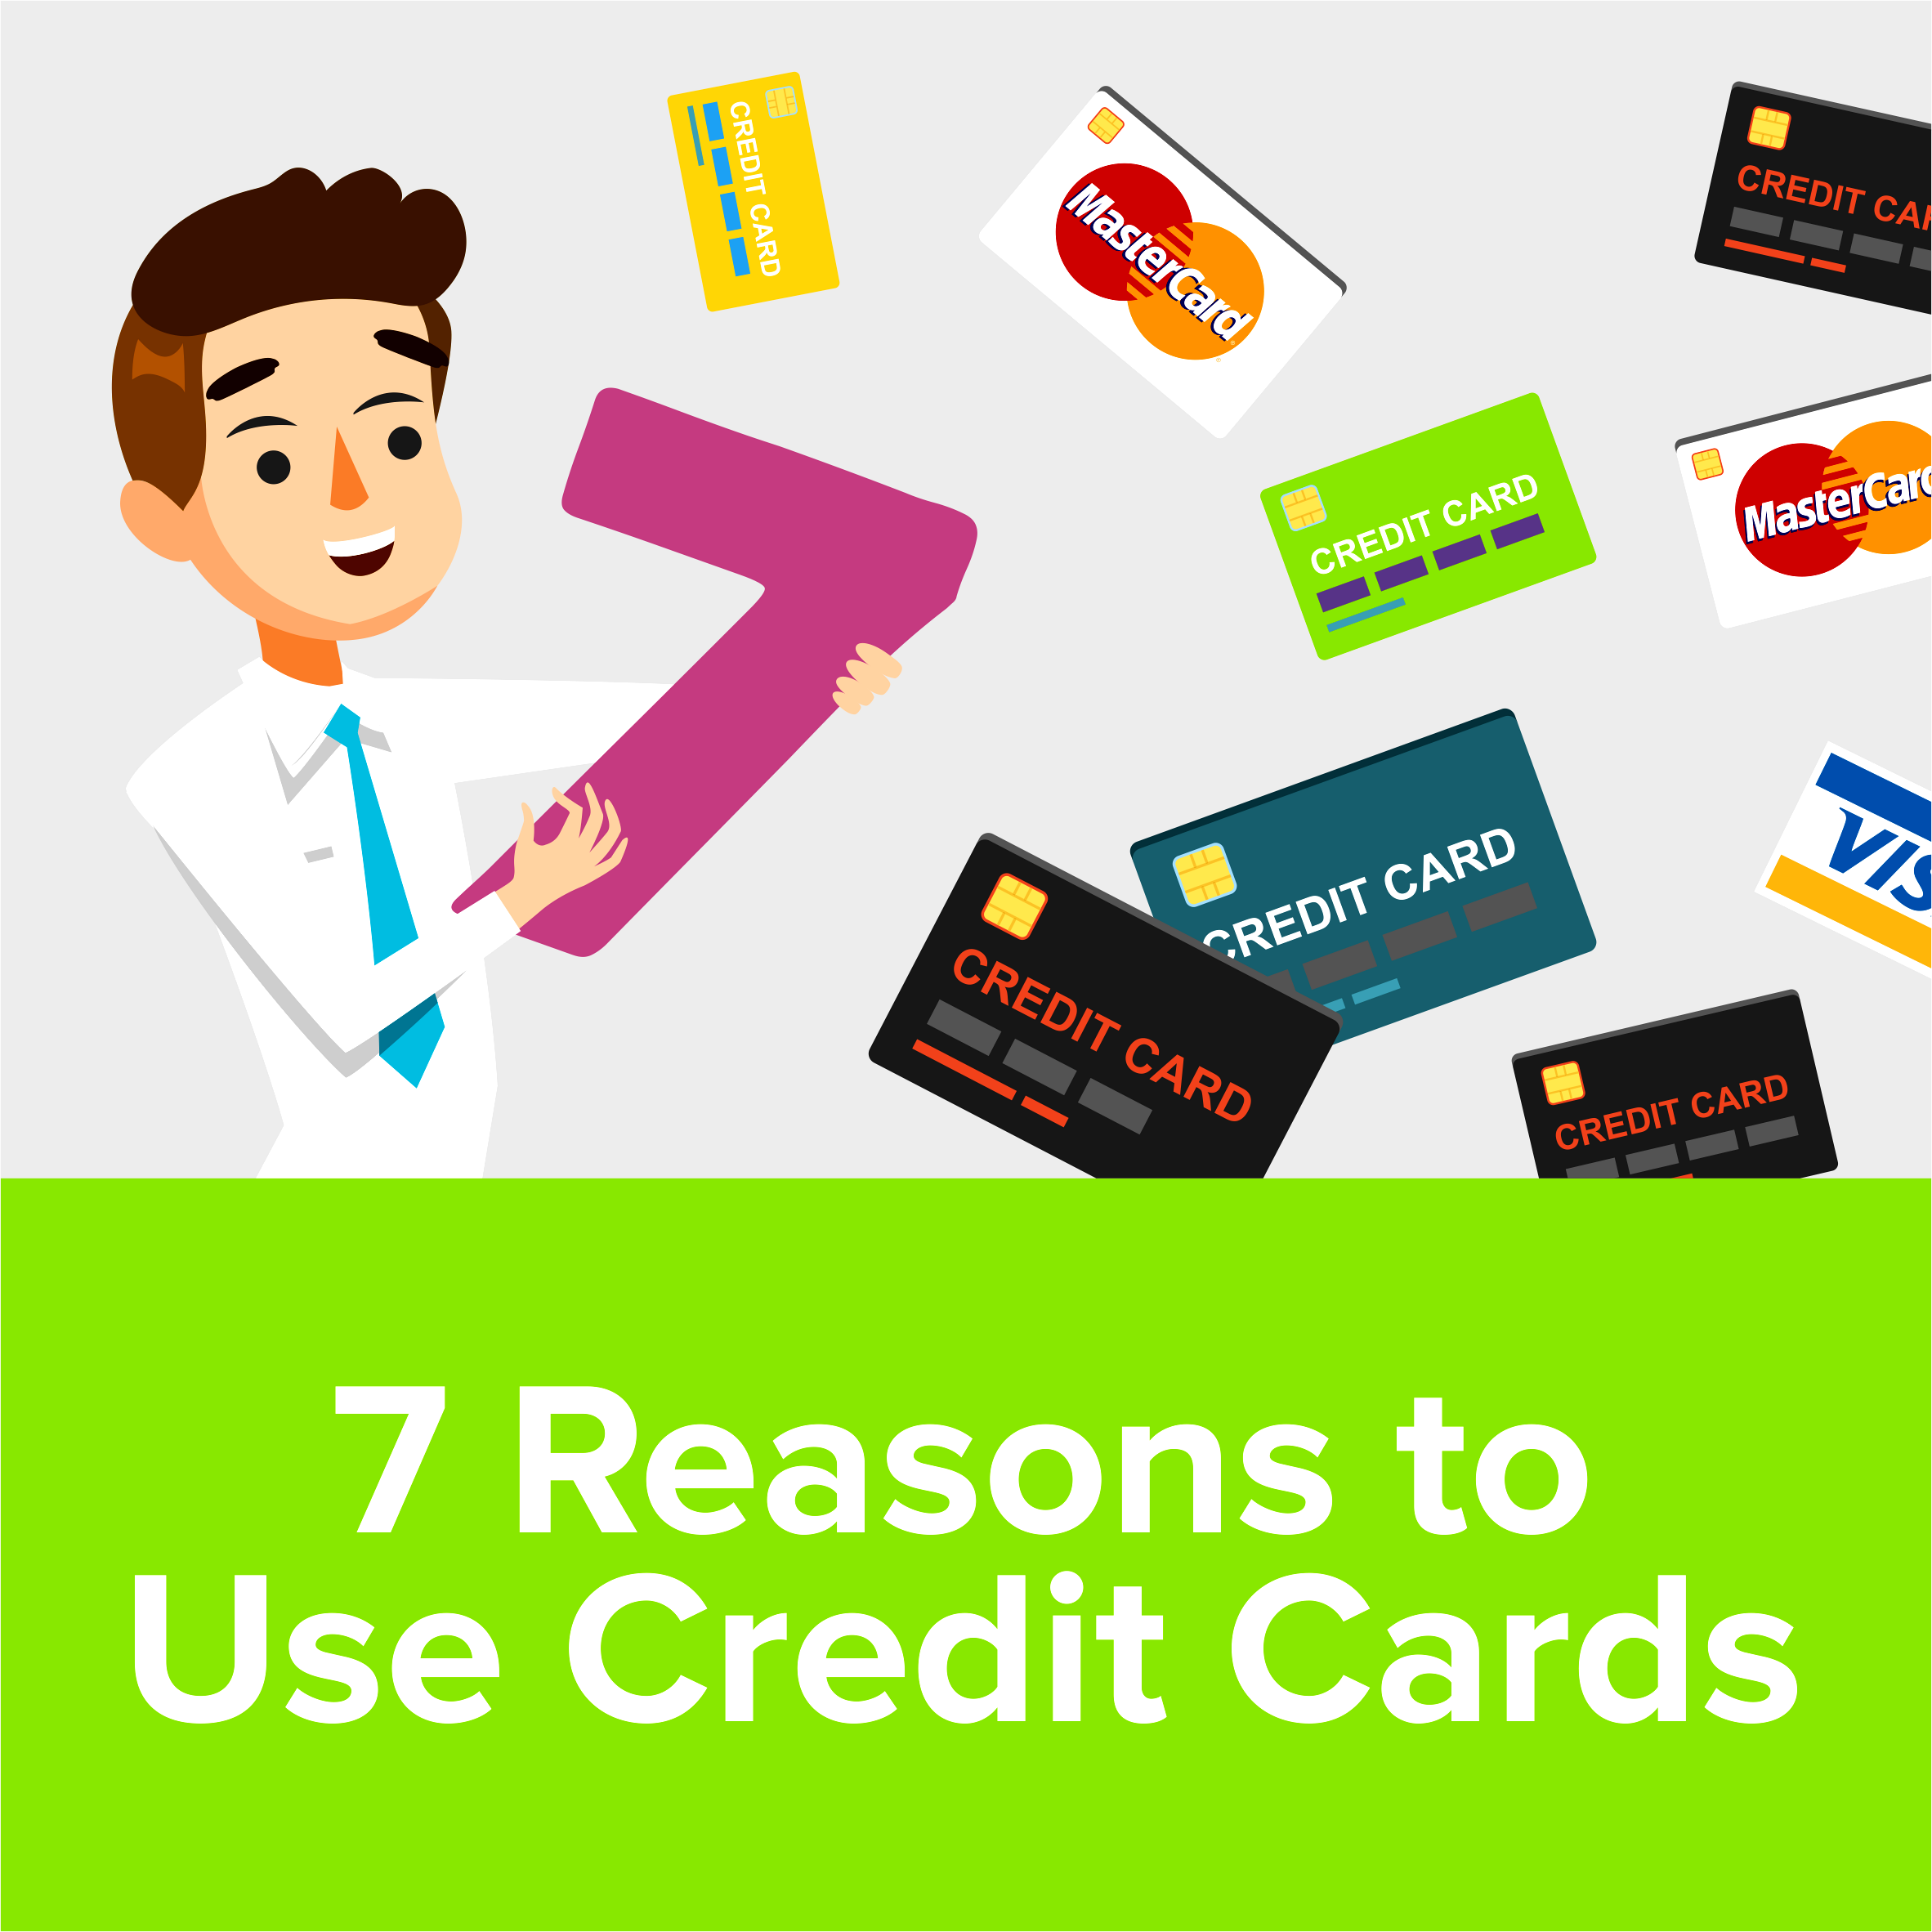 7 Reasons to Use Credit Cards